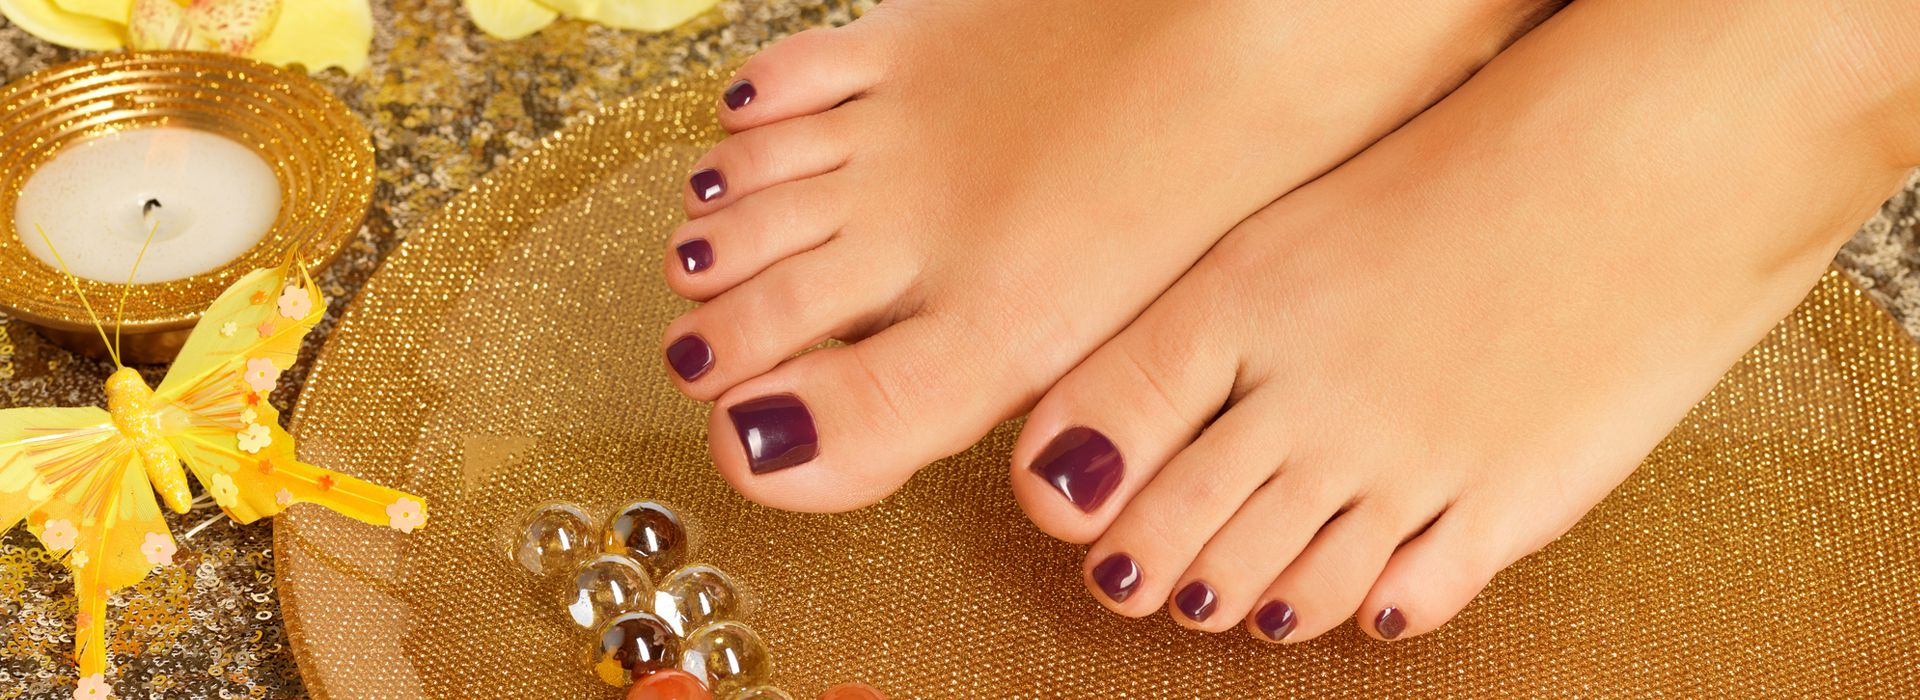 Allure Nail Spa - Nail salon 45069 in West Chester Township OH